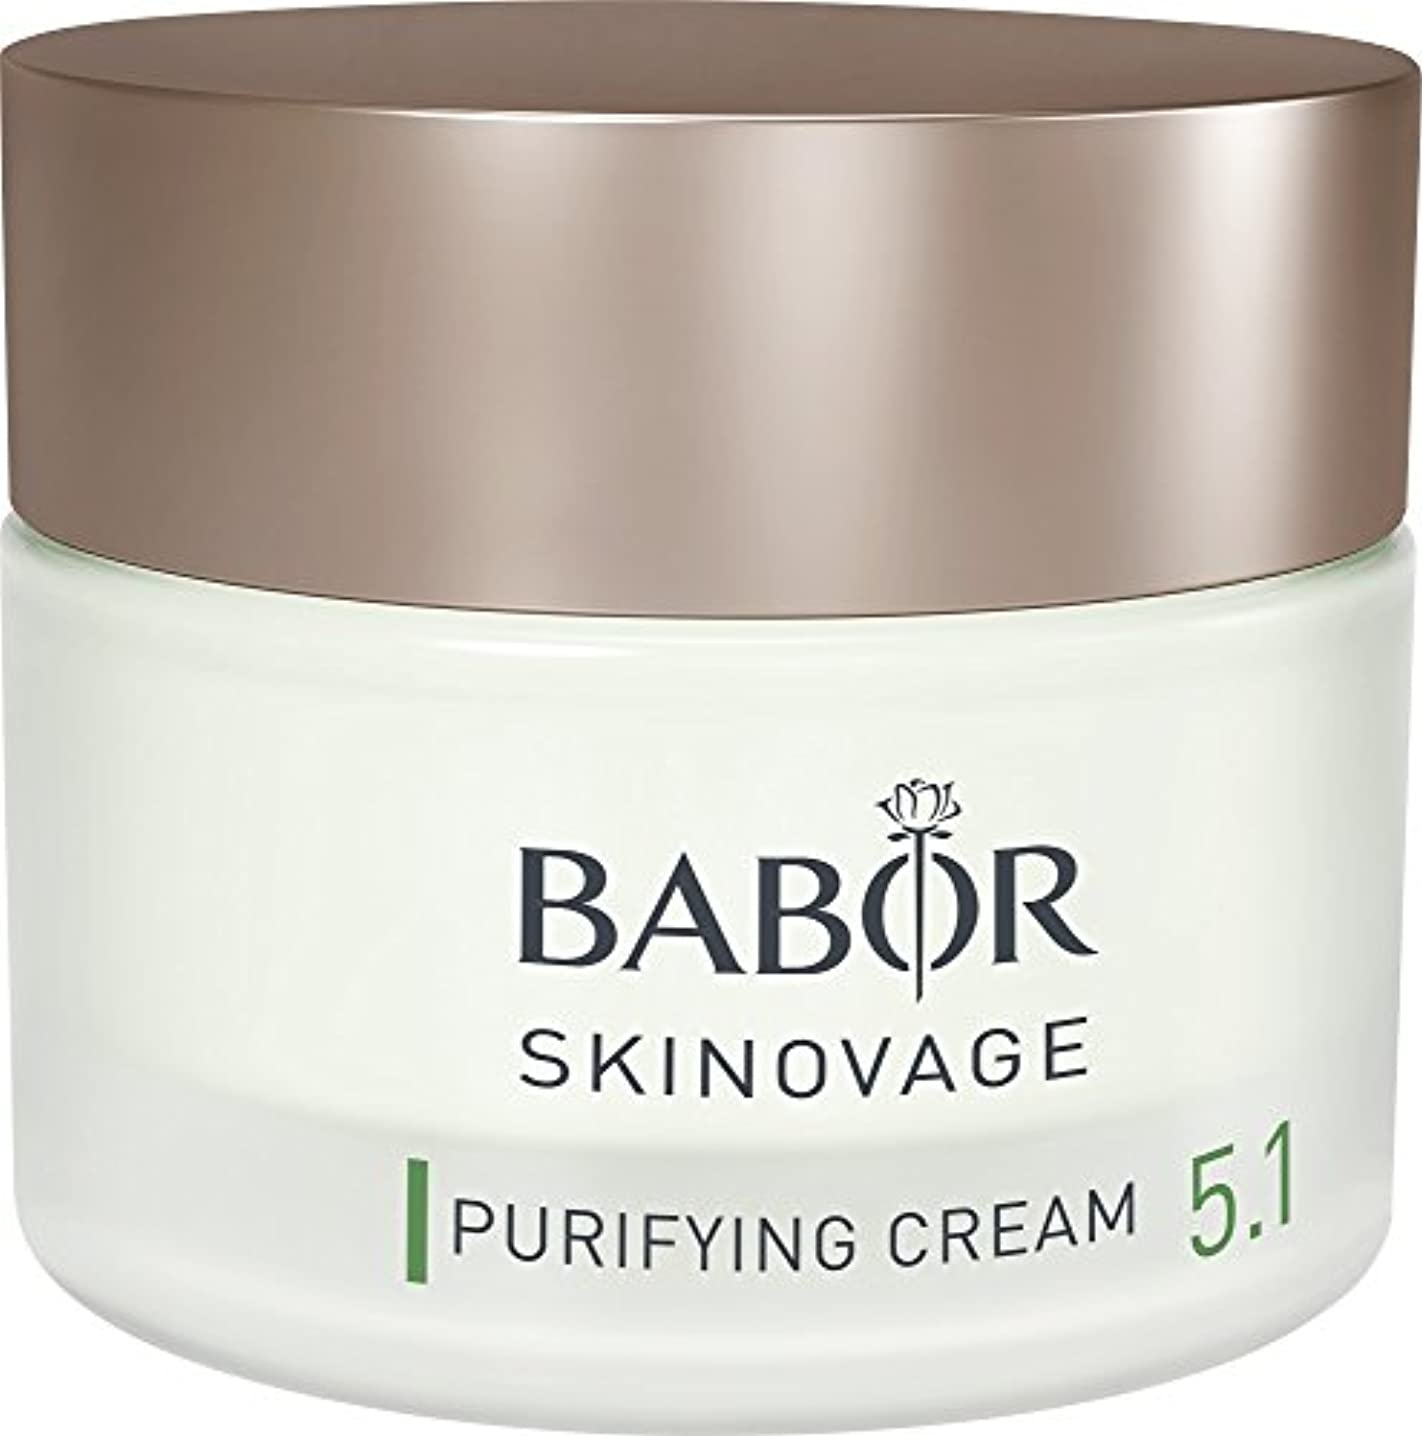 タップ省略する万歳バボール Skinovage [Age Preventing] Purifying Cream 5.1 - For Problem & Oily Skin 50ml/1.7oz並行輸入品